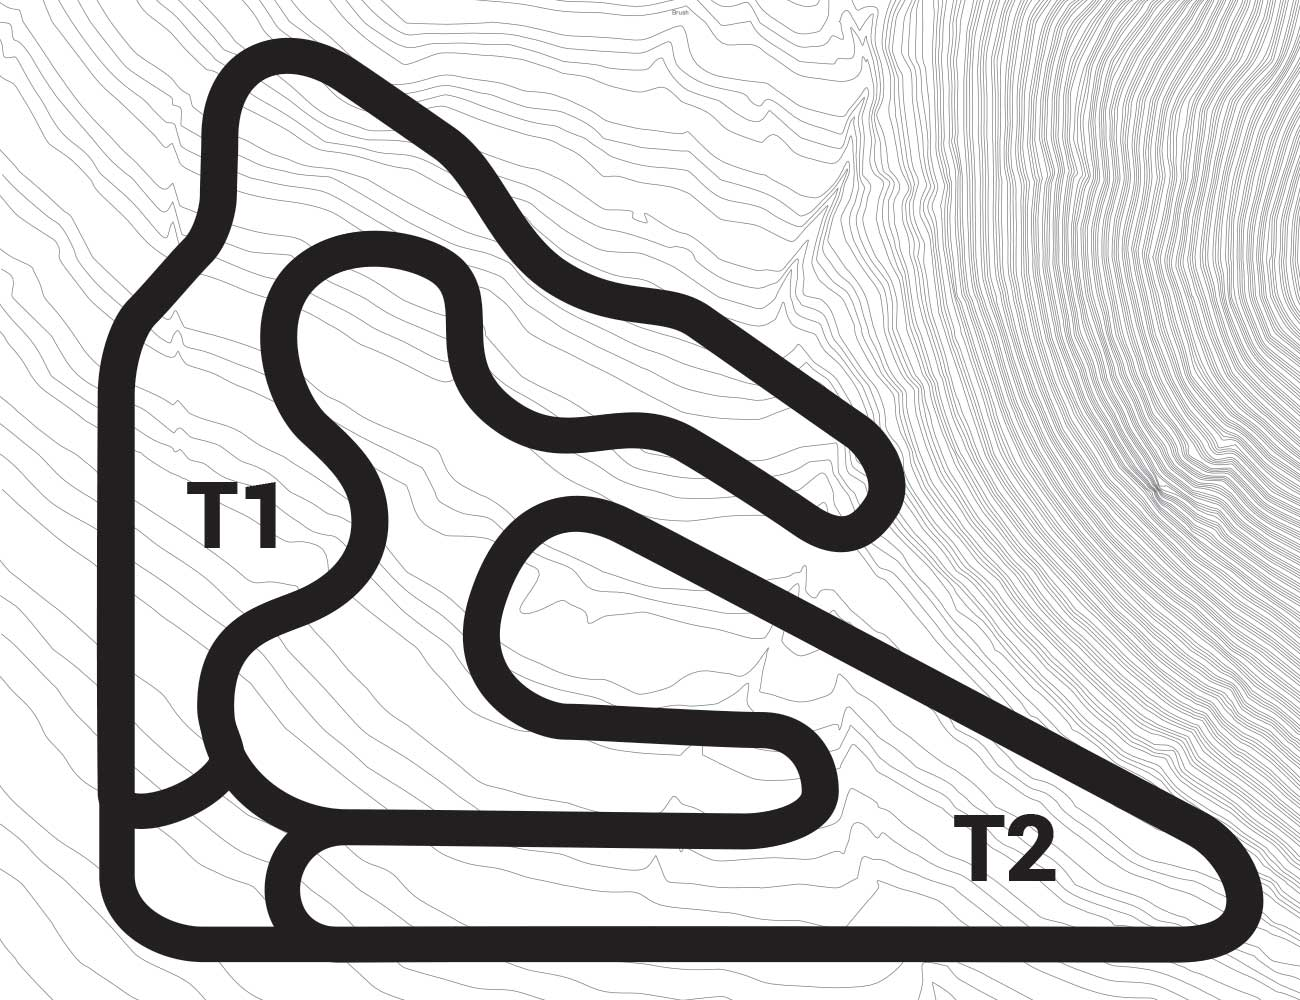 k1 Circuit track map concept